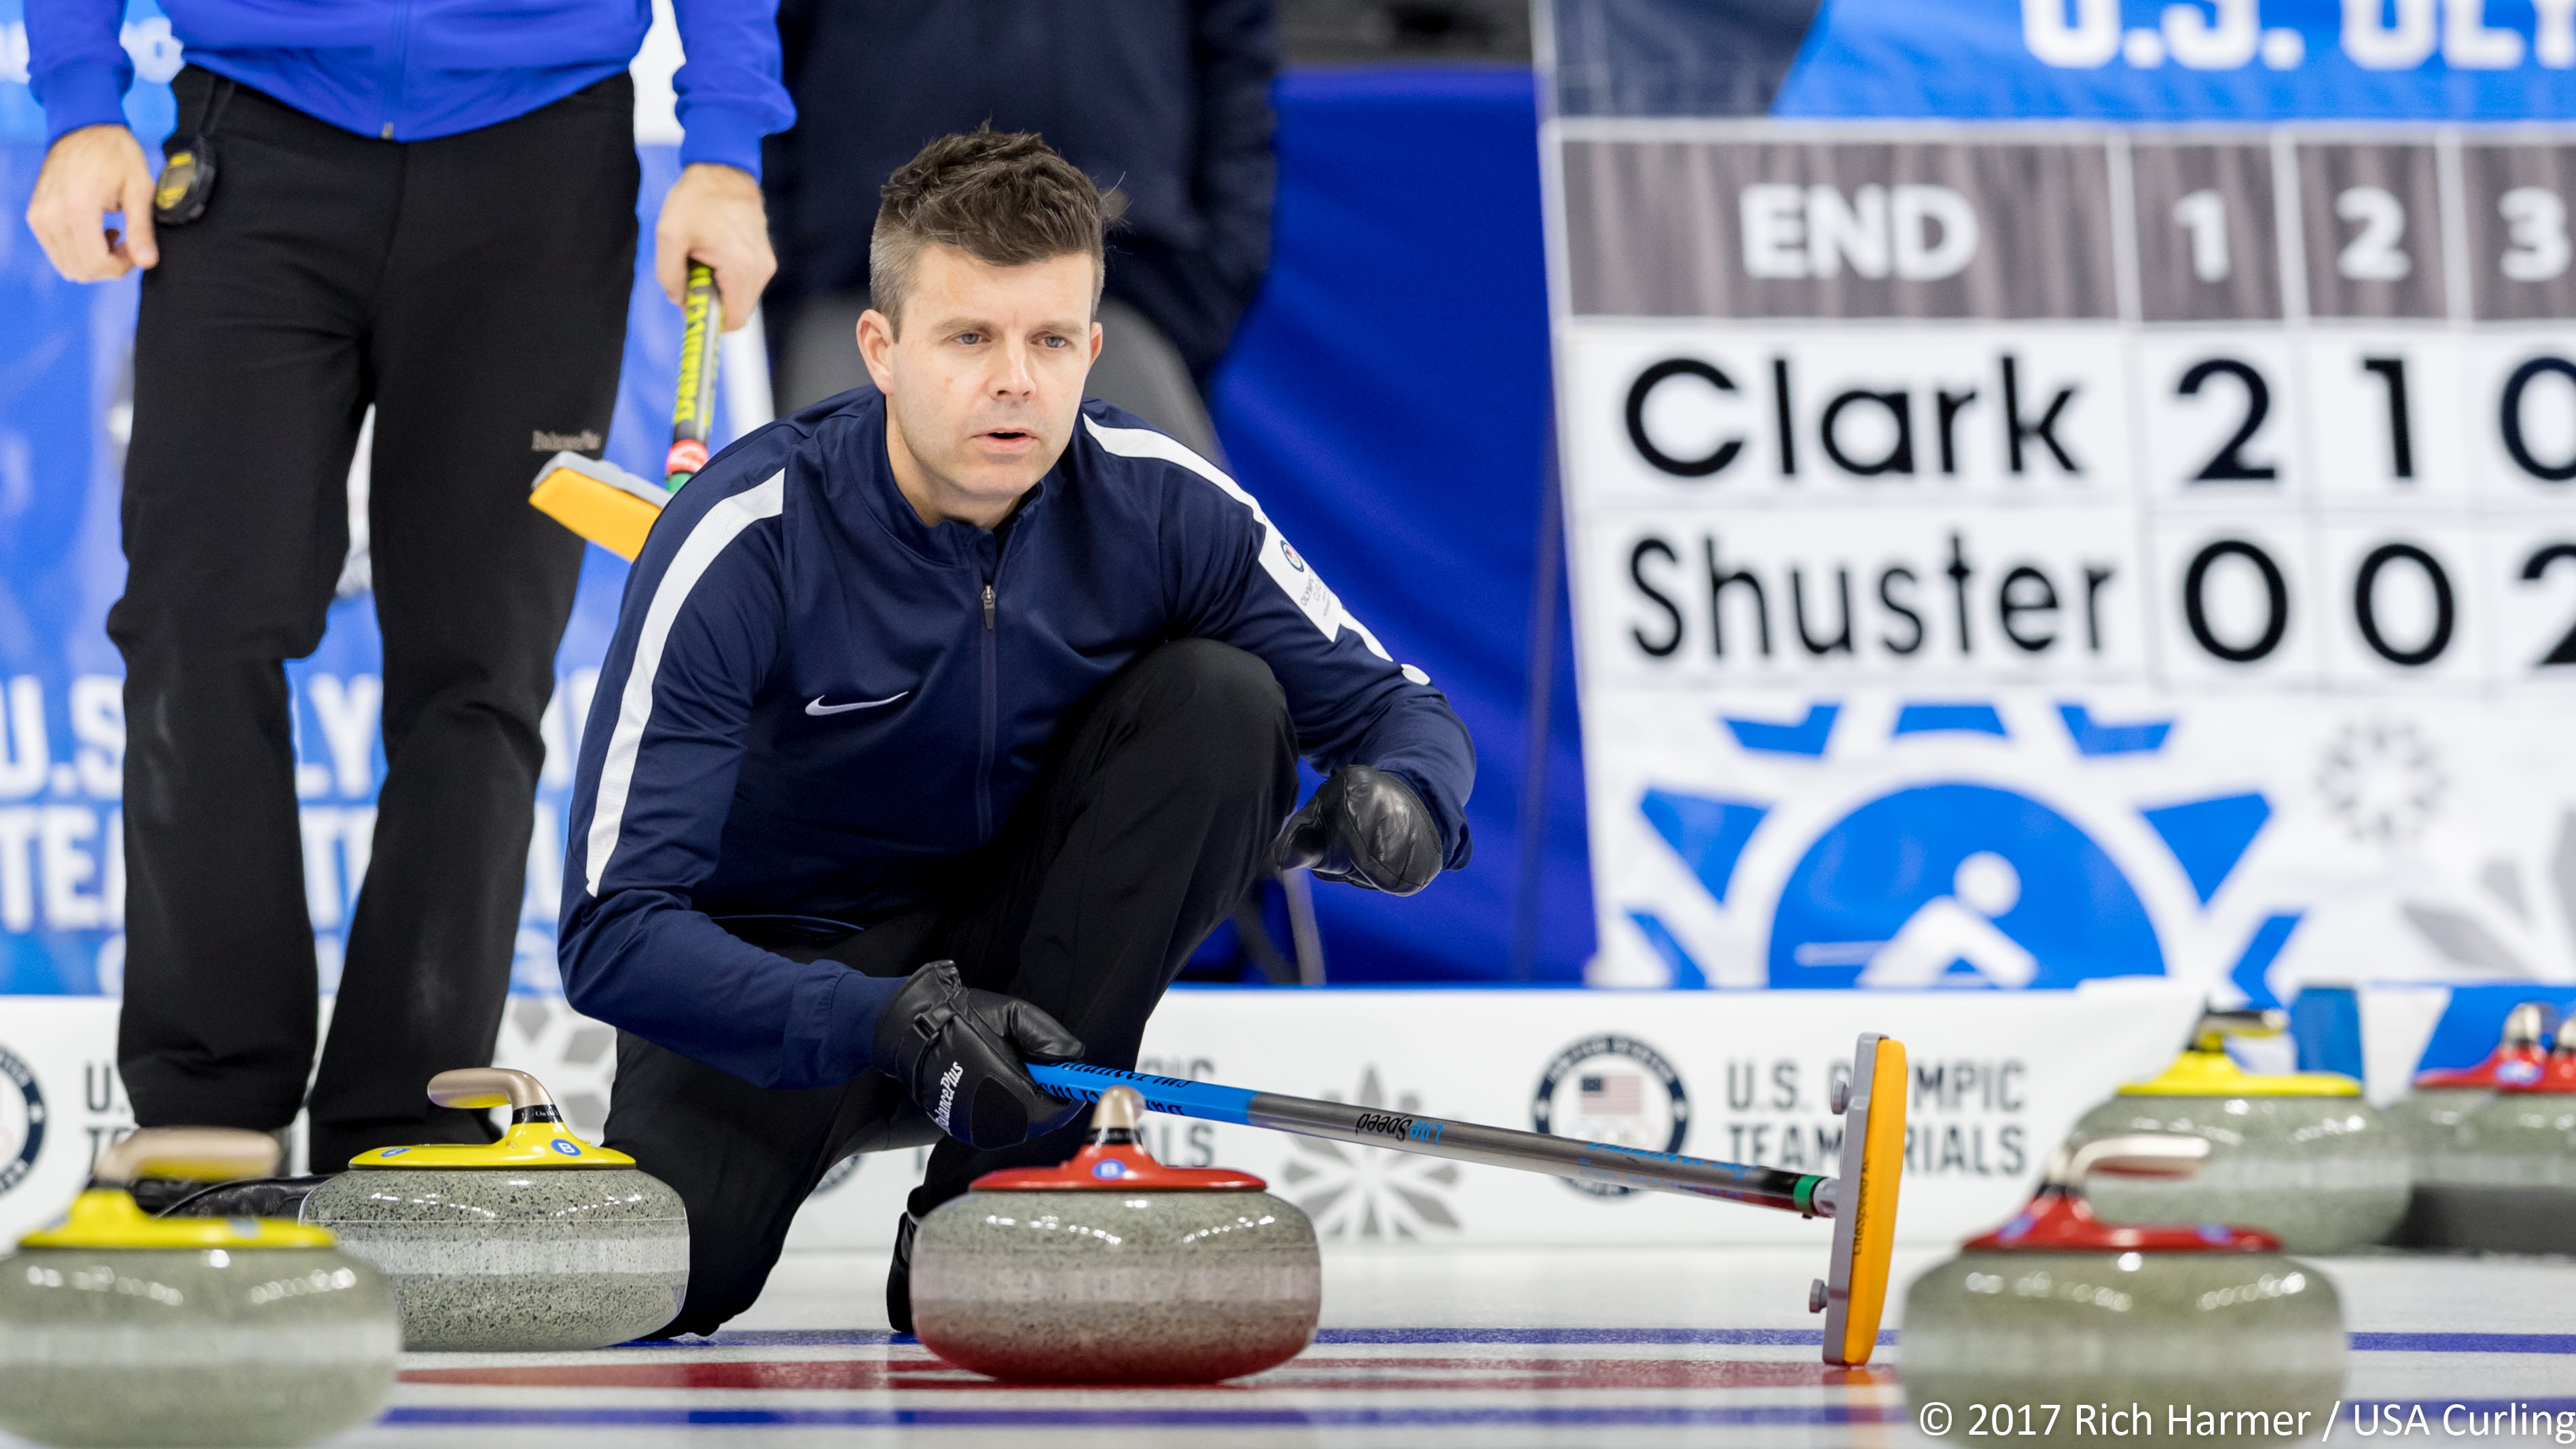 McCormick, Shuster, Roth Separating From US Trials Field